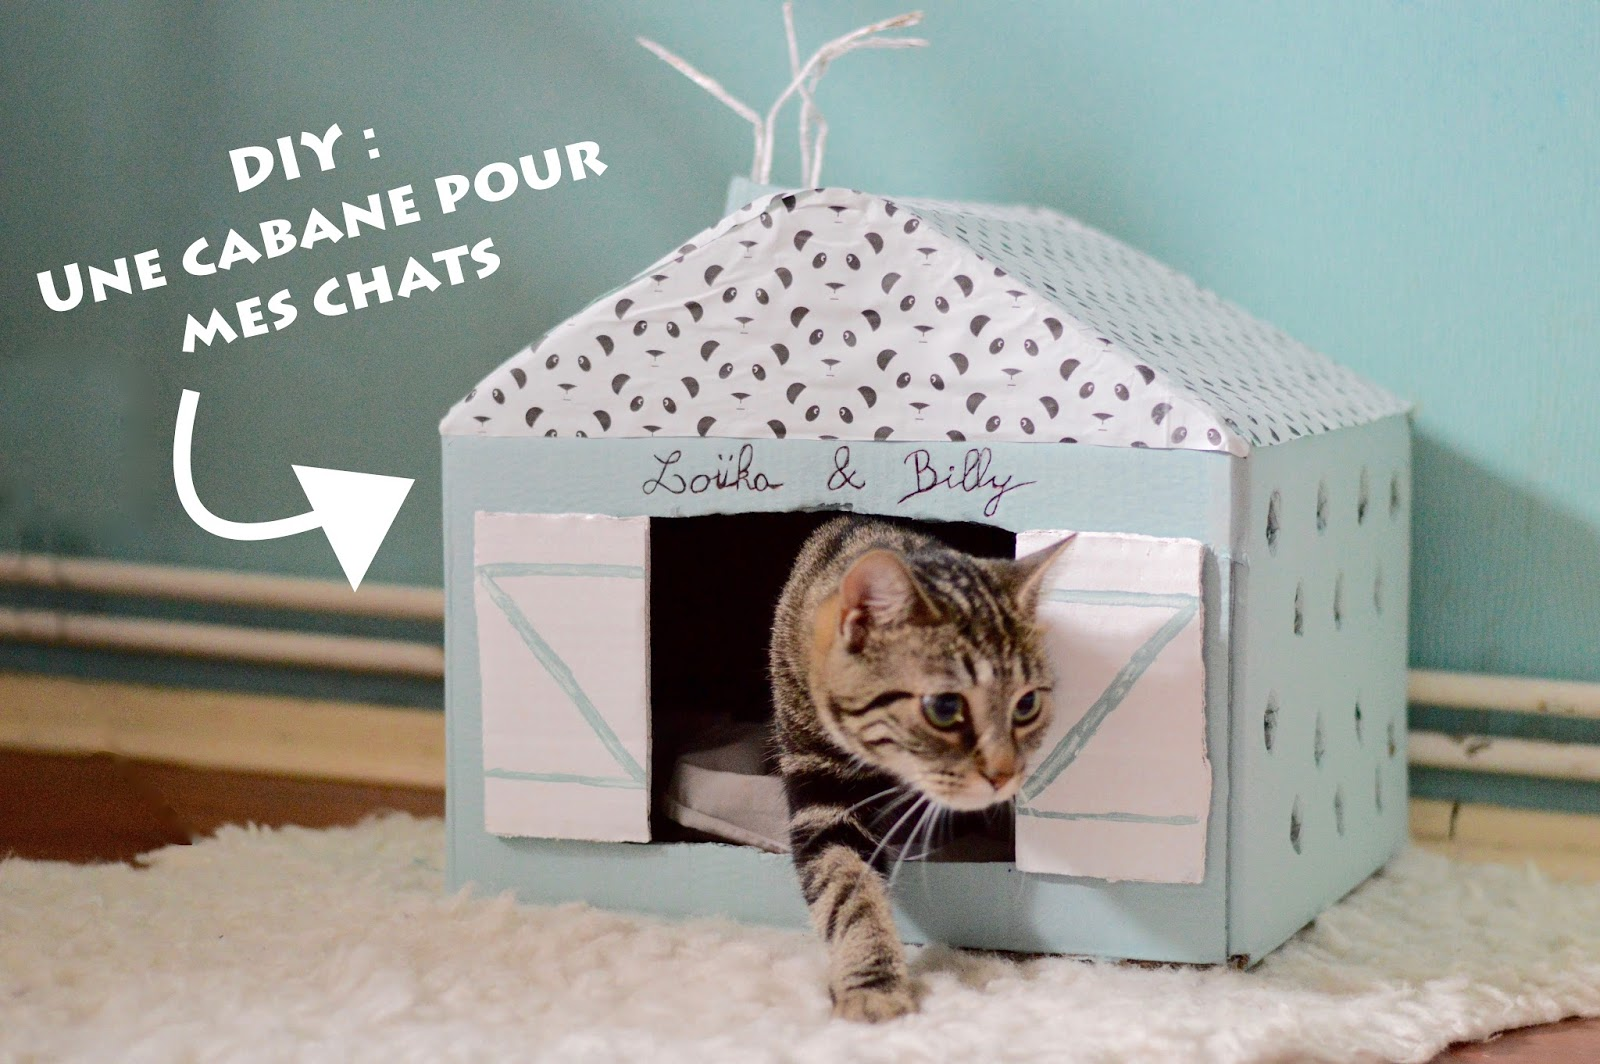 diy une cabane pour mes chats. Black Bedroom Furniture Sets. Home Design Ideas